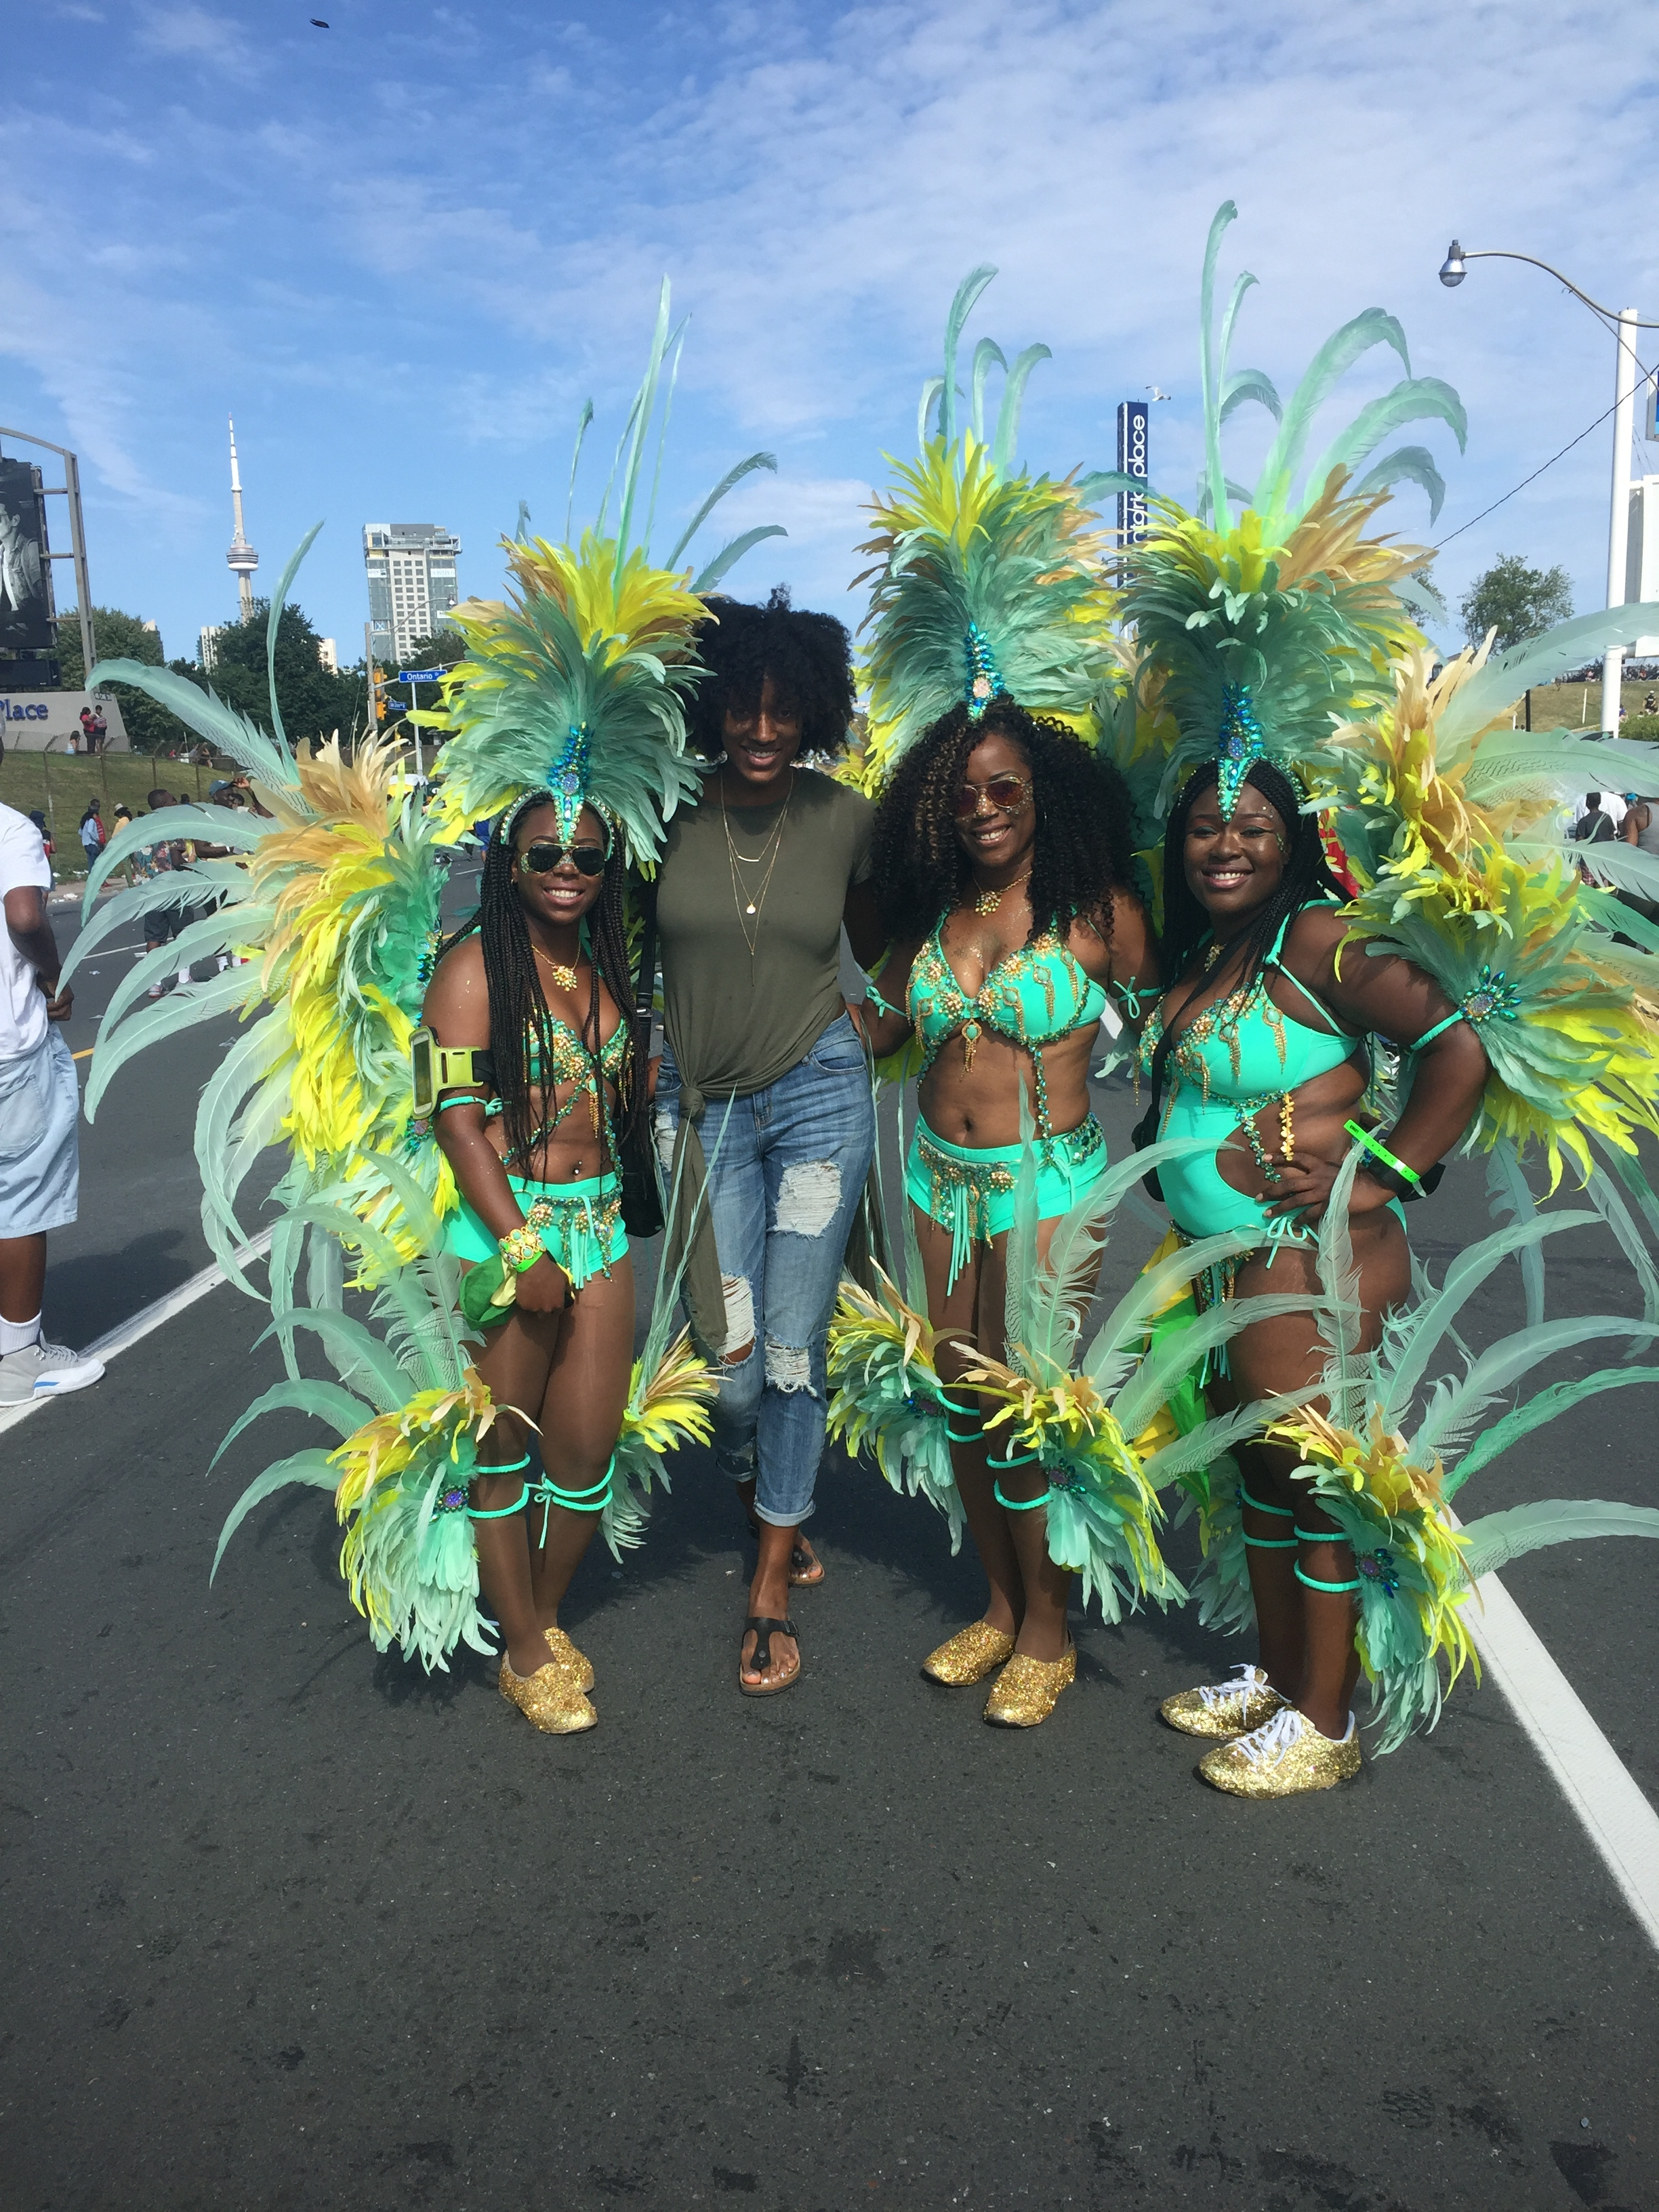 These gorgeous ladies are wearing a beautiful array of green, yellow and gold! And their headpieces are amazing!